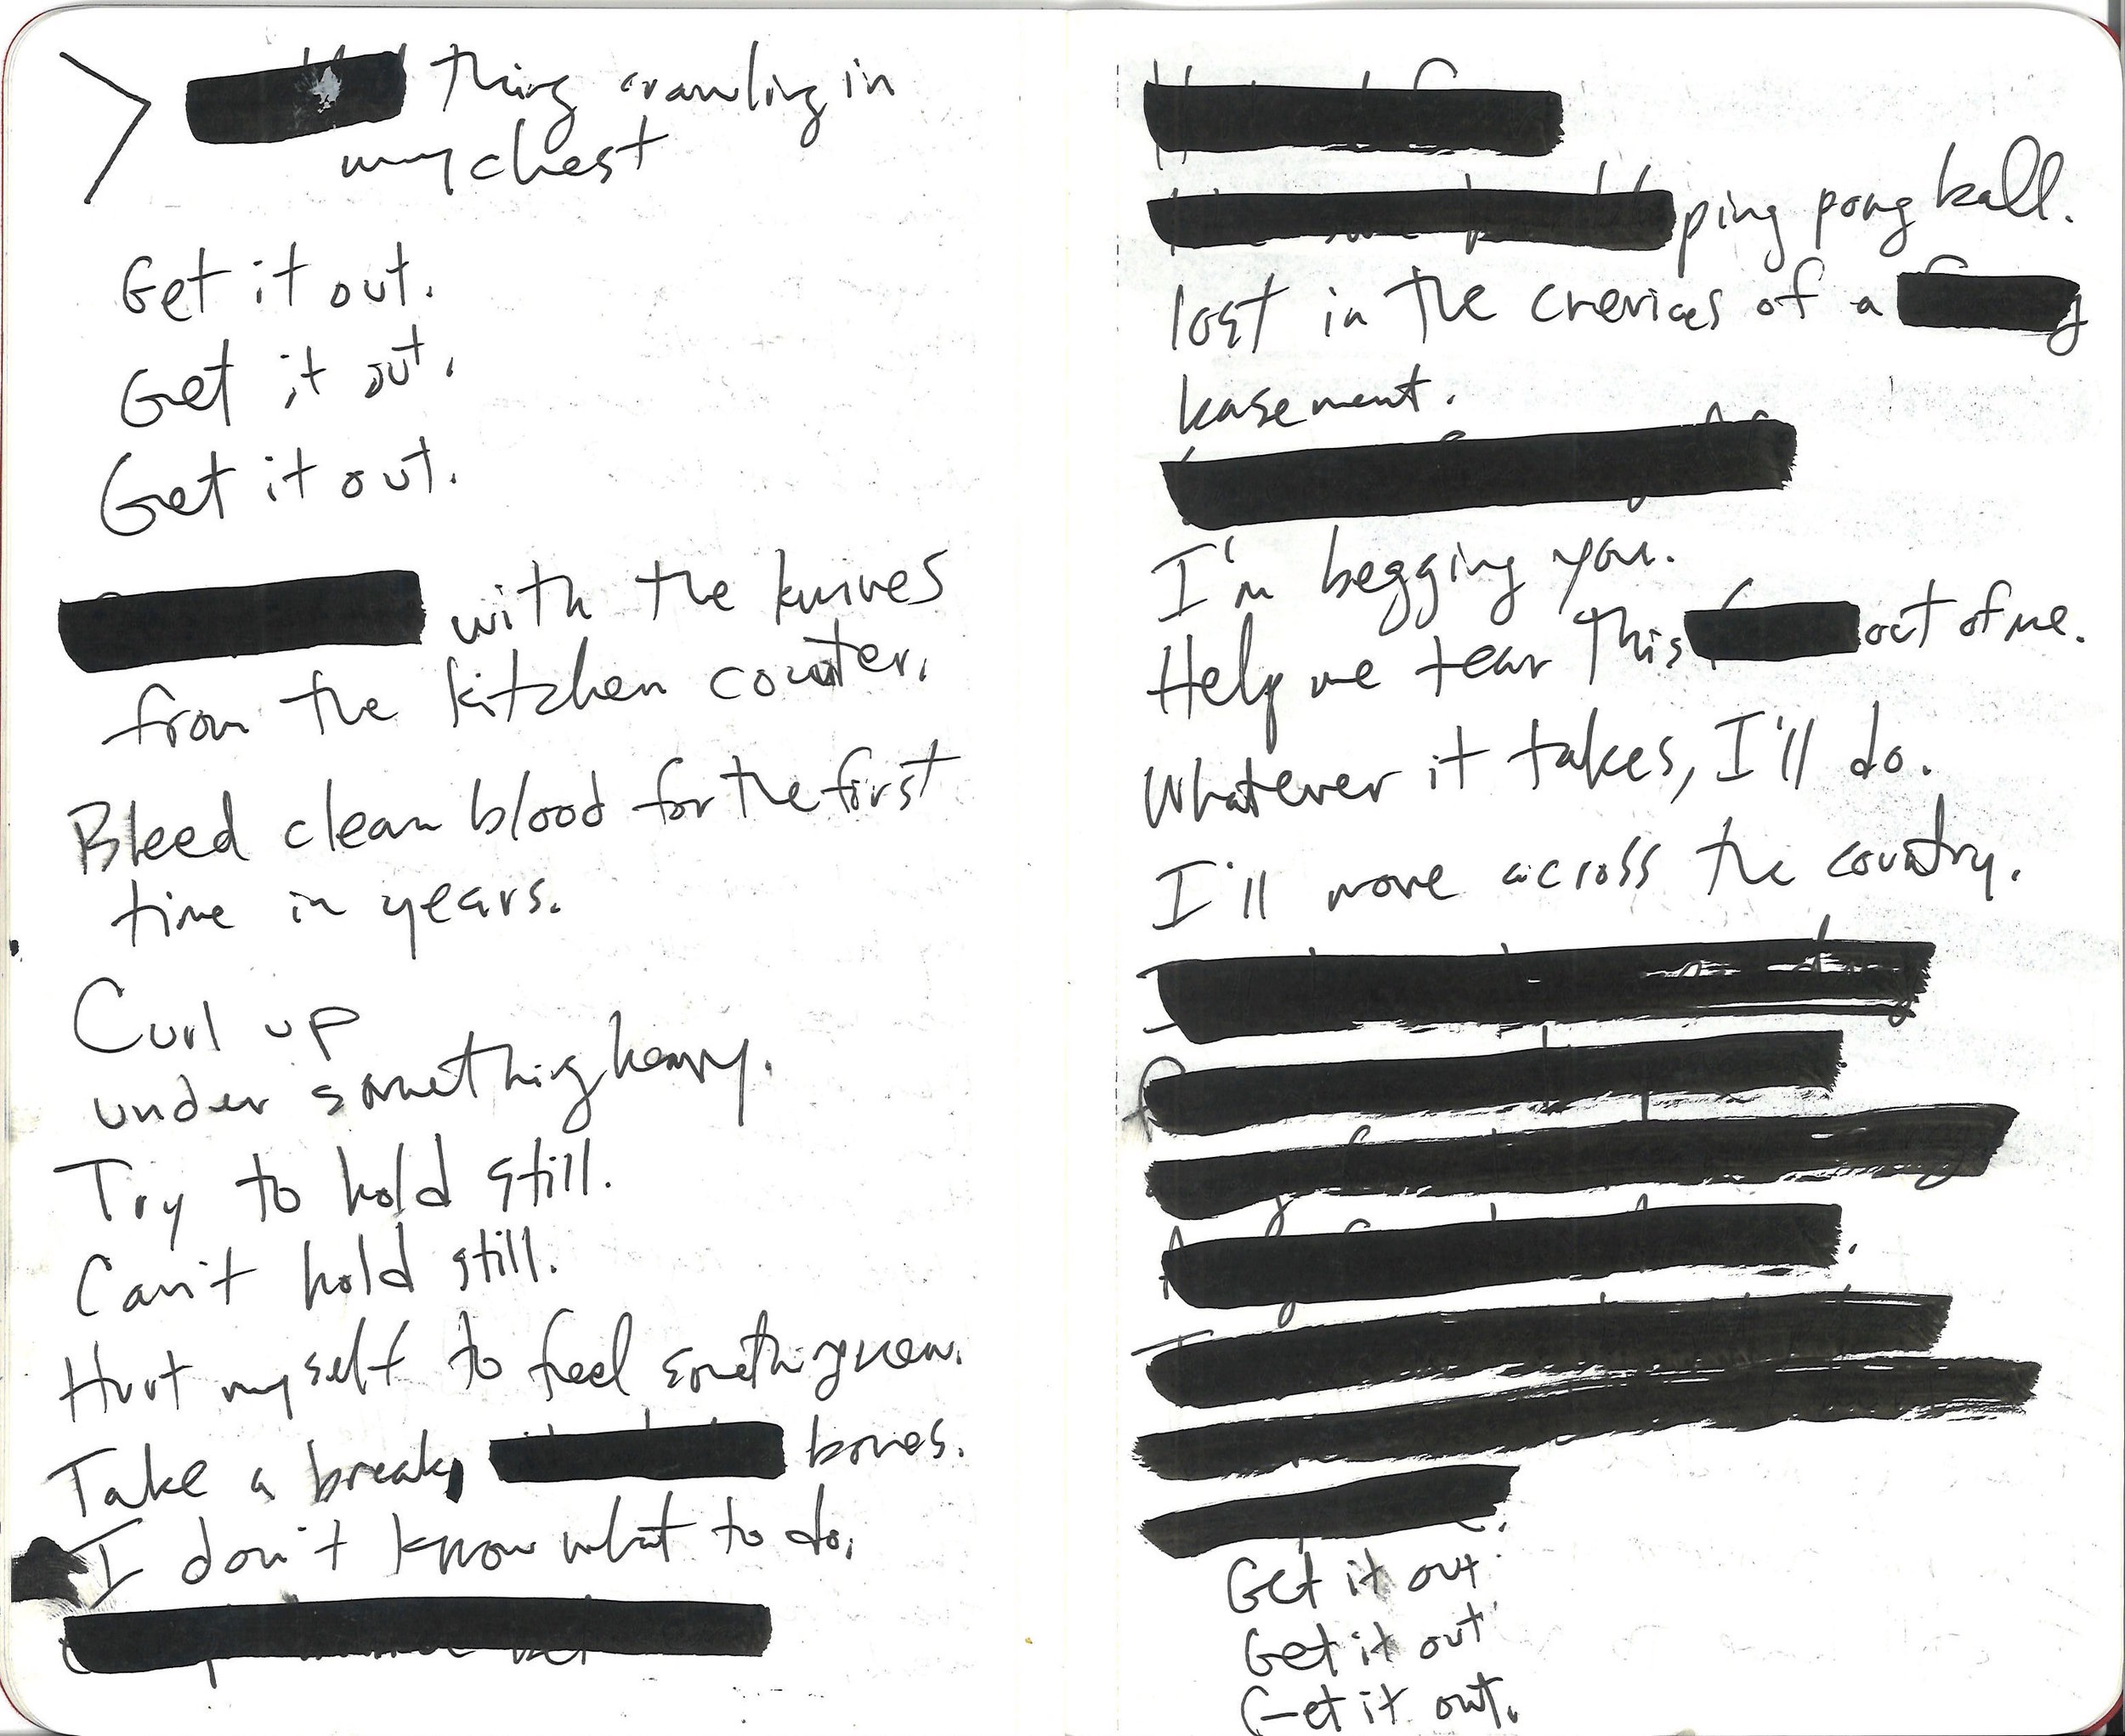 Page one of two. Dictated by Amy, transcribed and redacted by Reg.